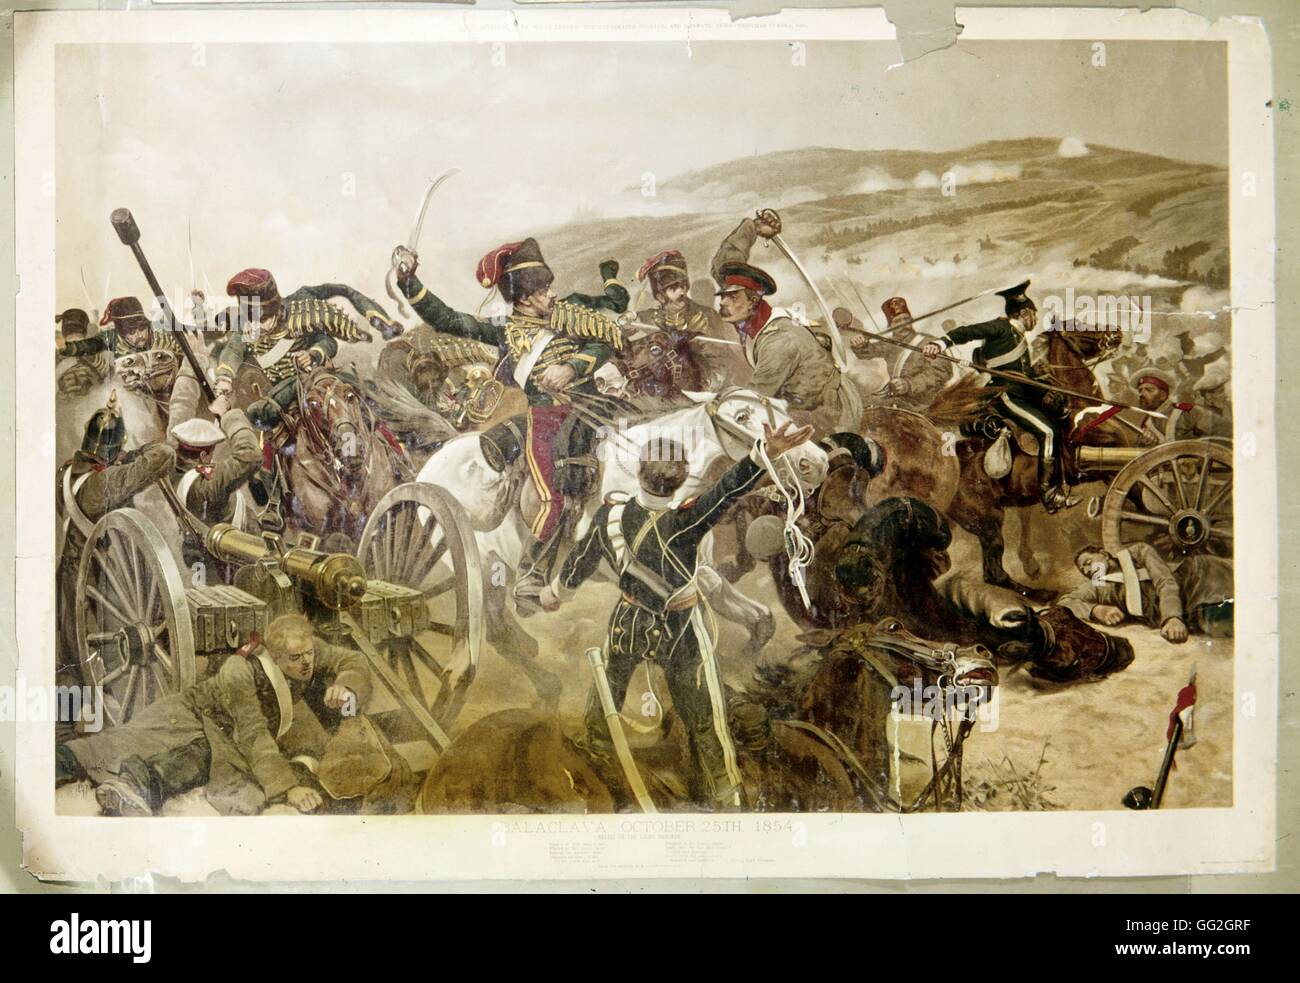 Battle of Balaklava during the Crimean War. 25 October 1854. Private collection - Stock Image